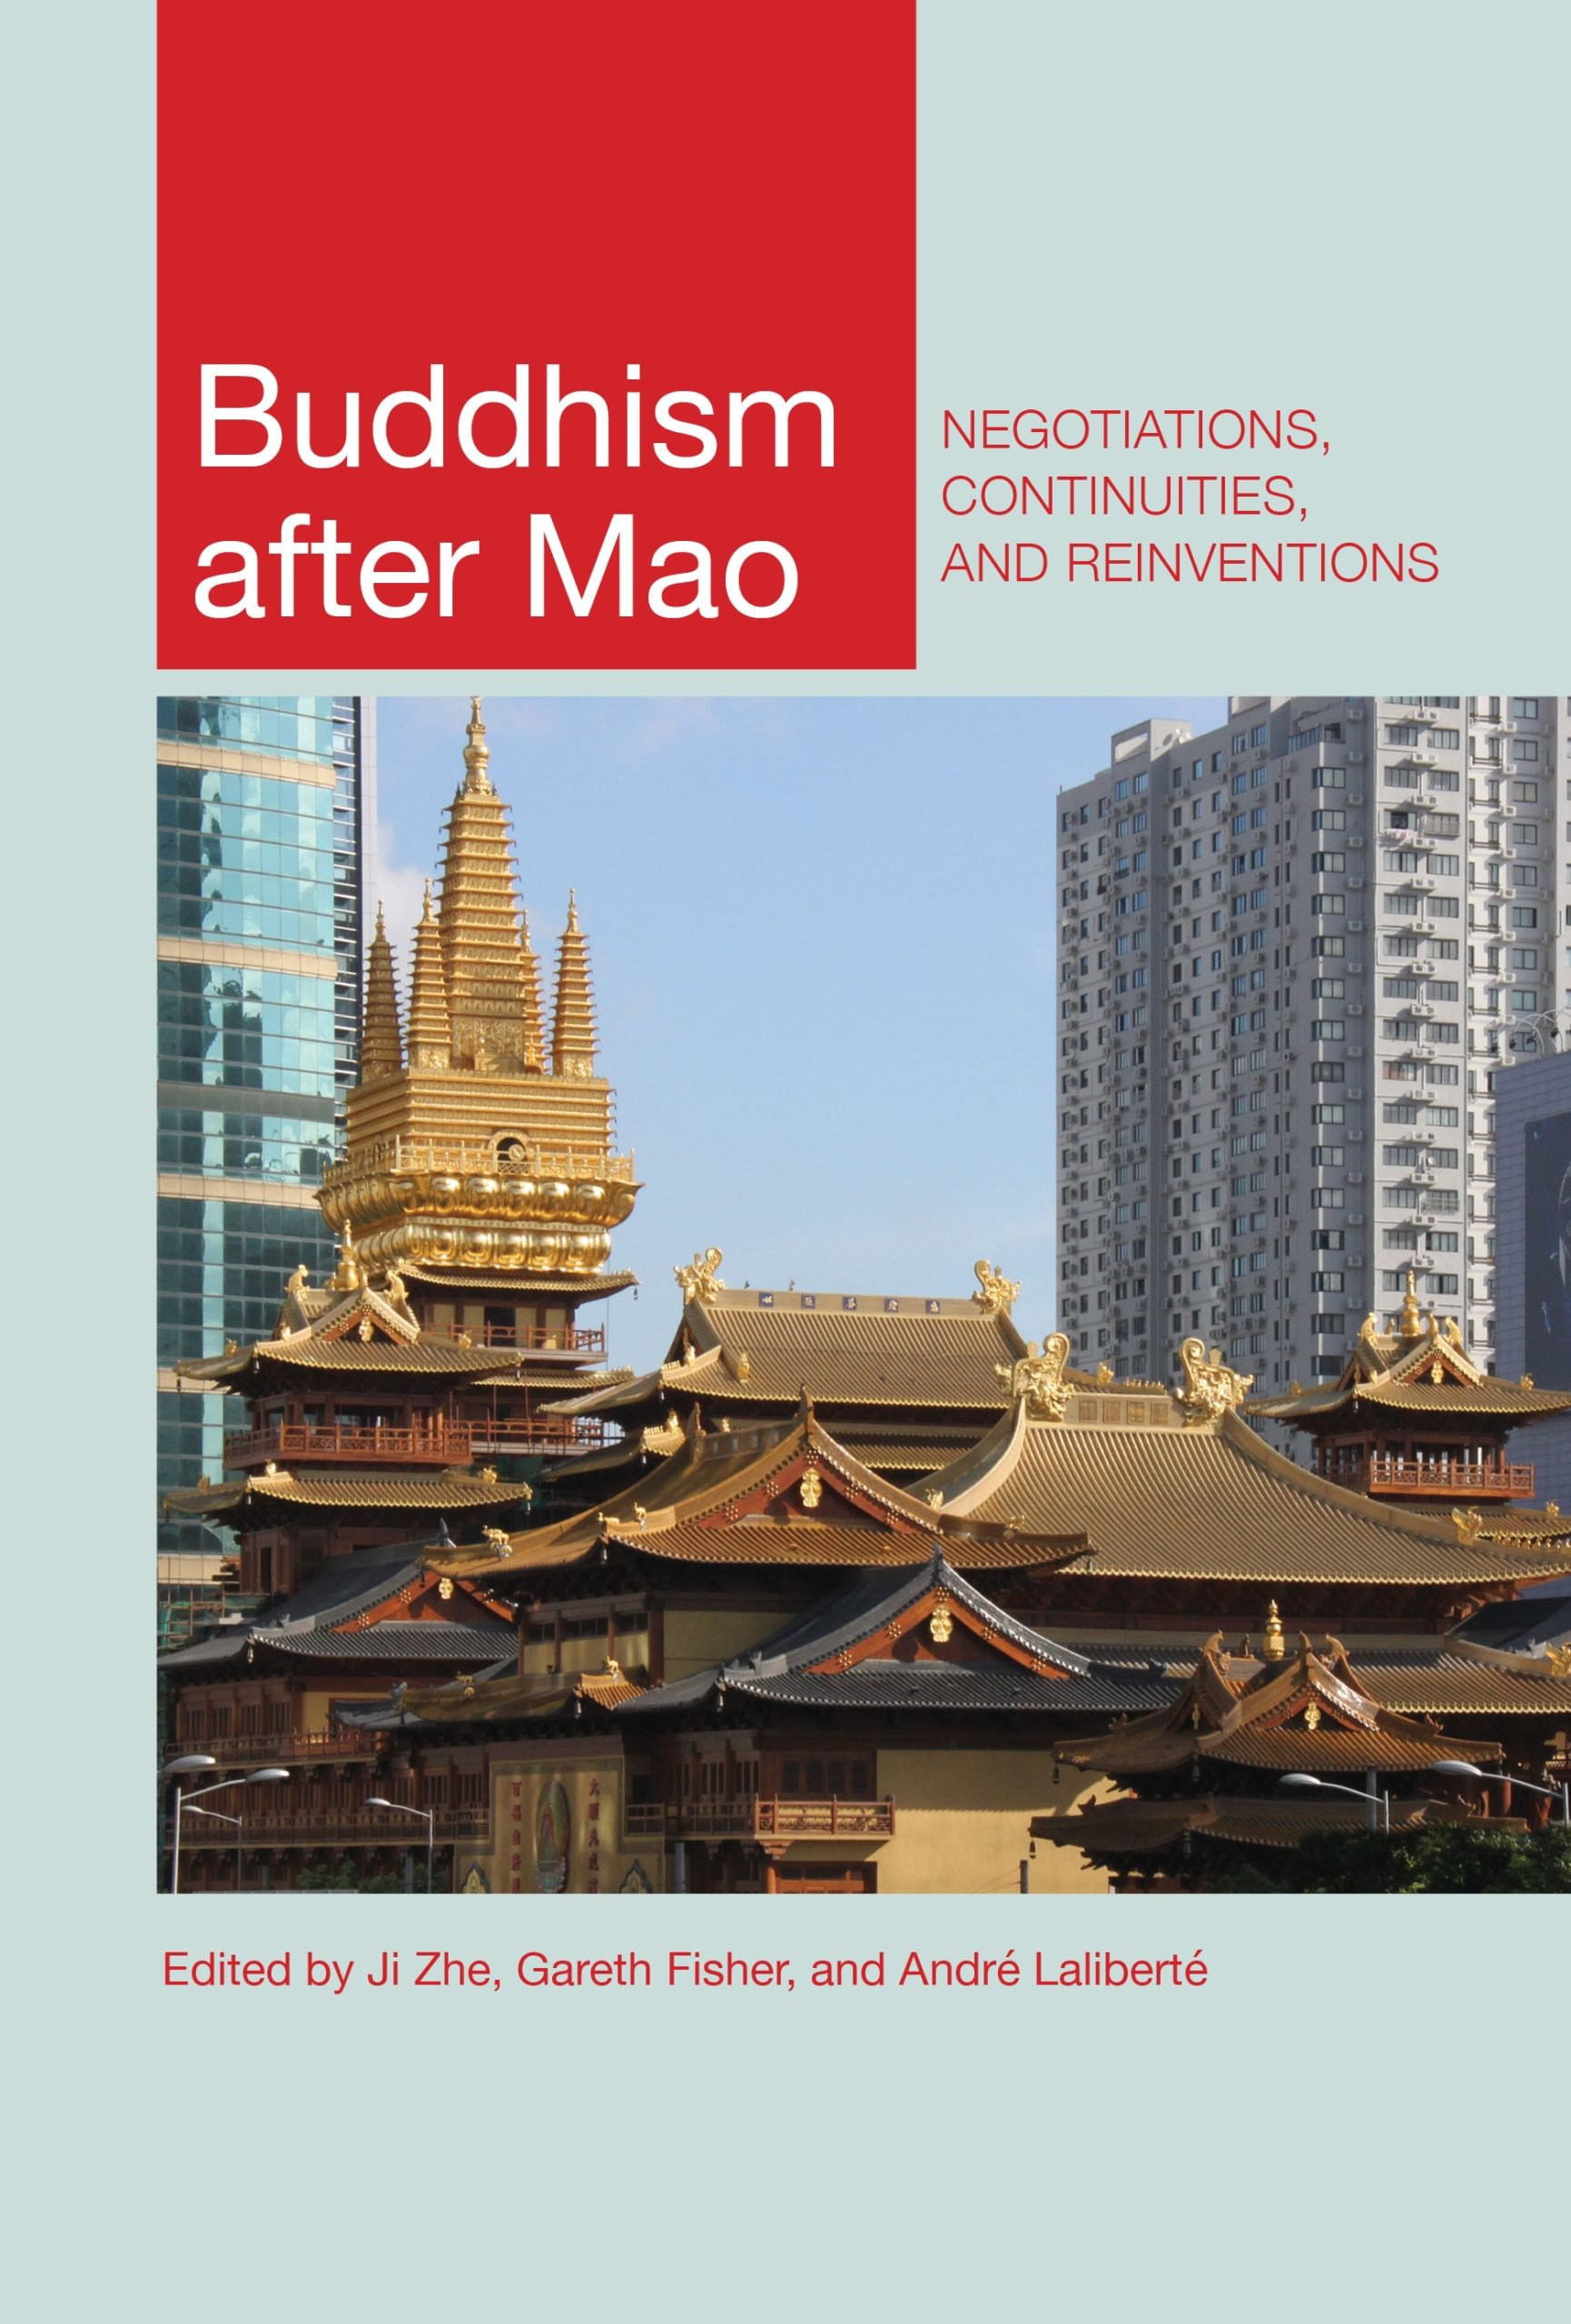 Buddhism after Mao: Negotiations, Continuities, and Reinventions